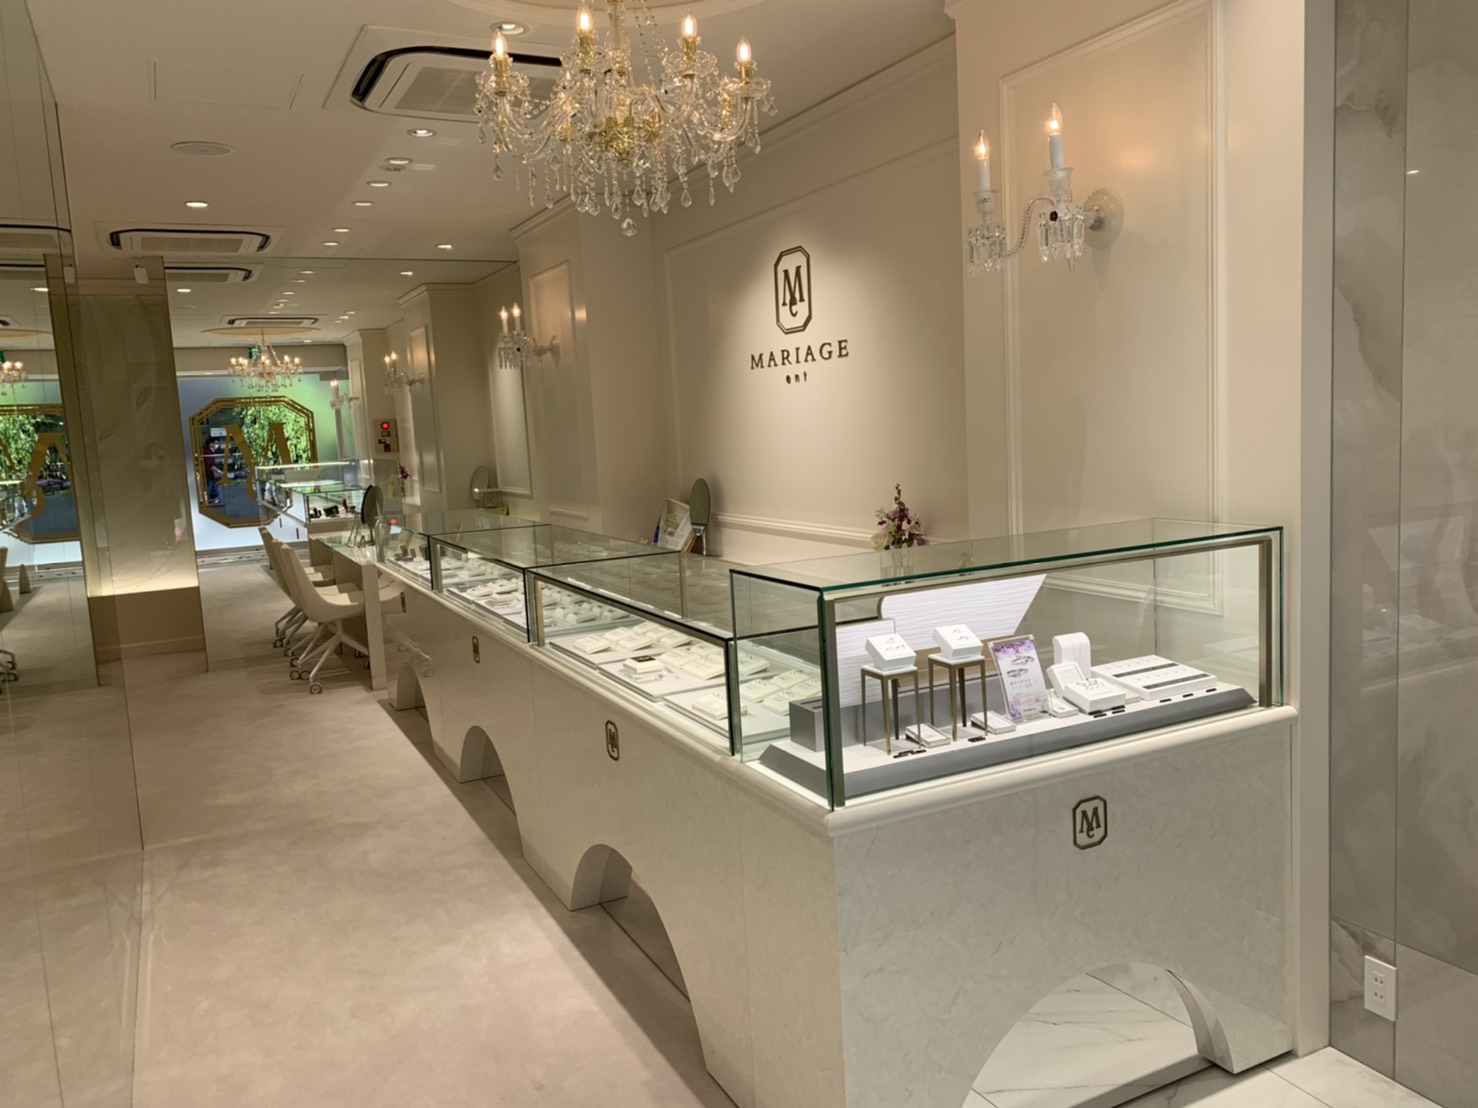 Mariage ent横滨元町总店